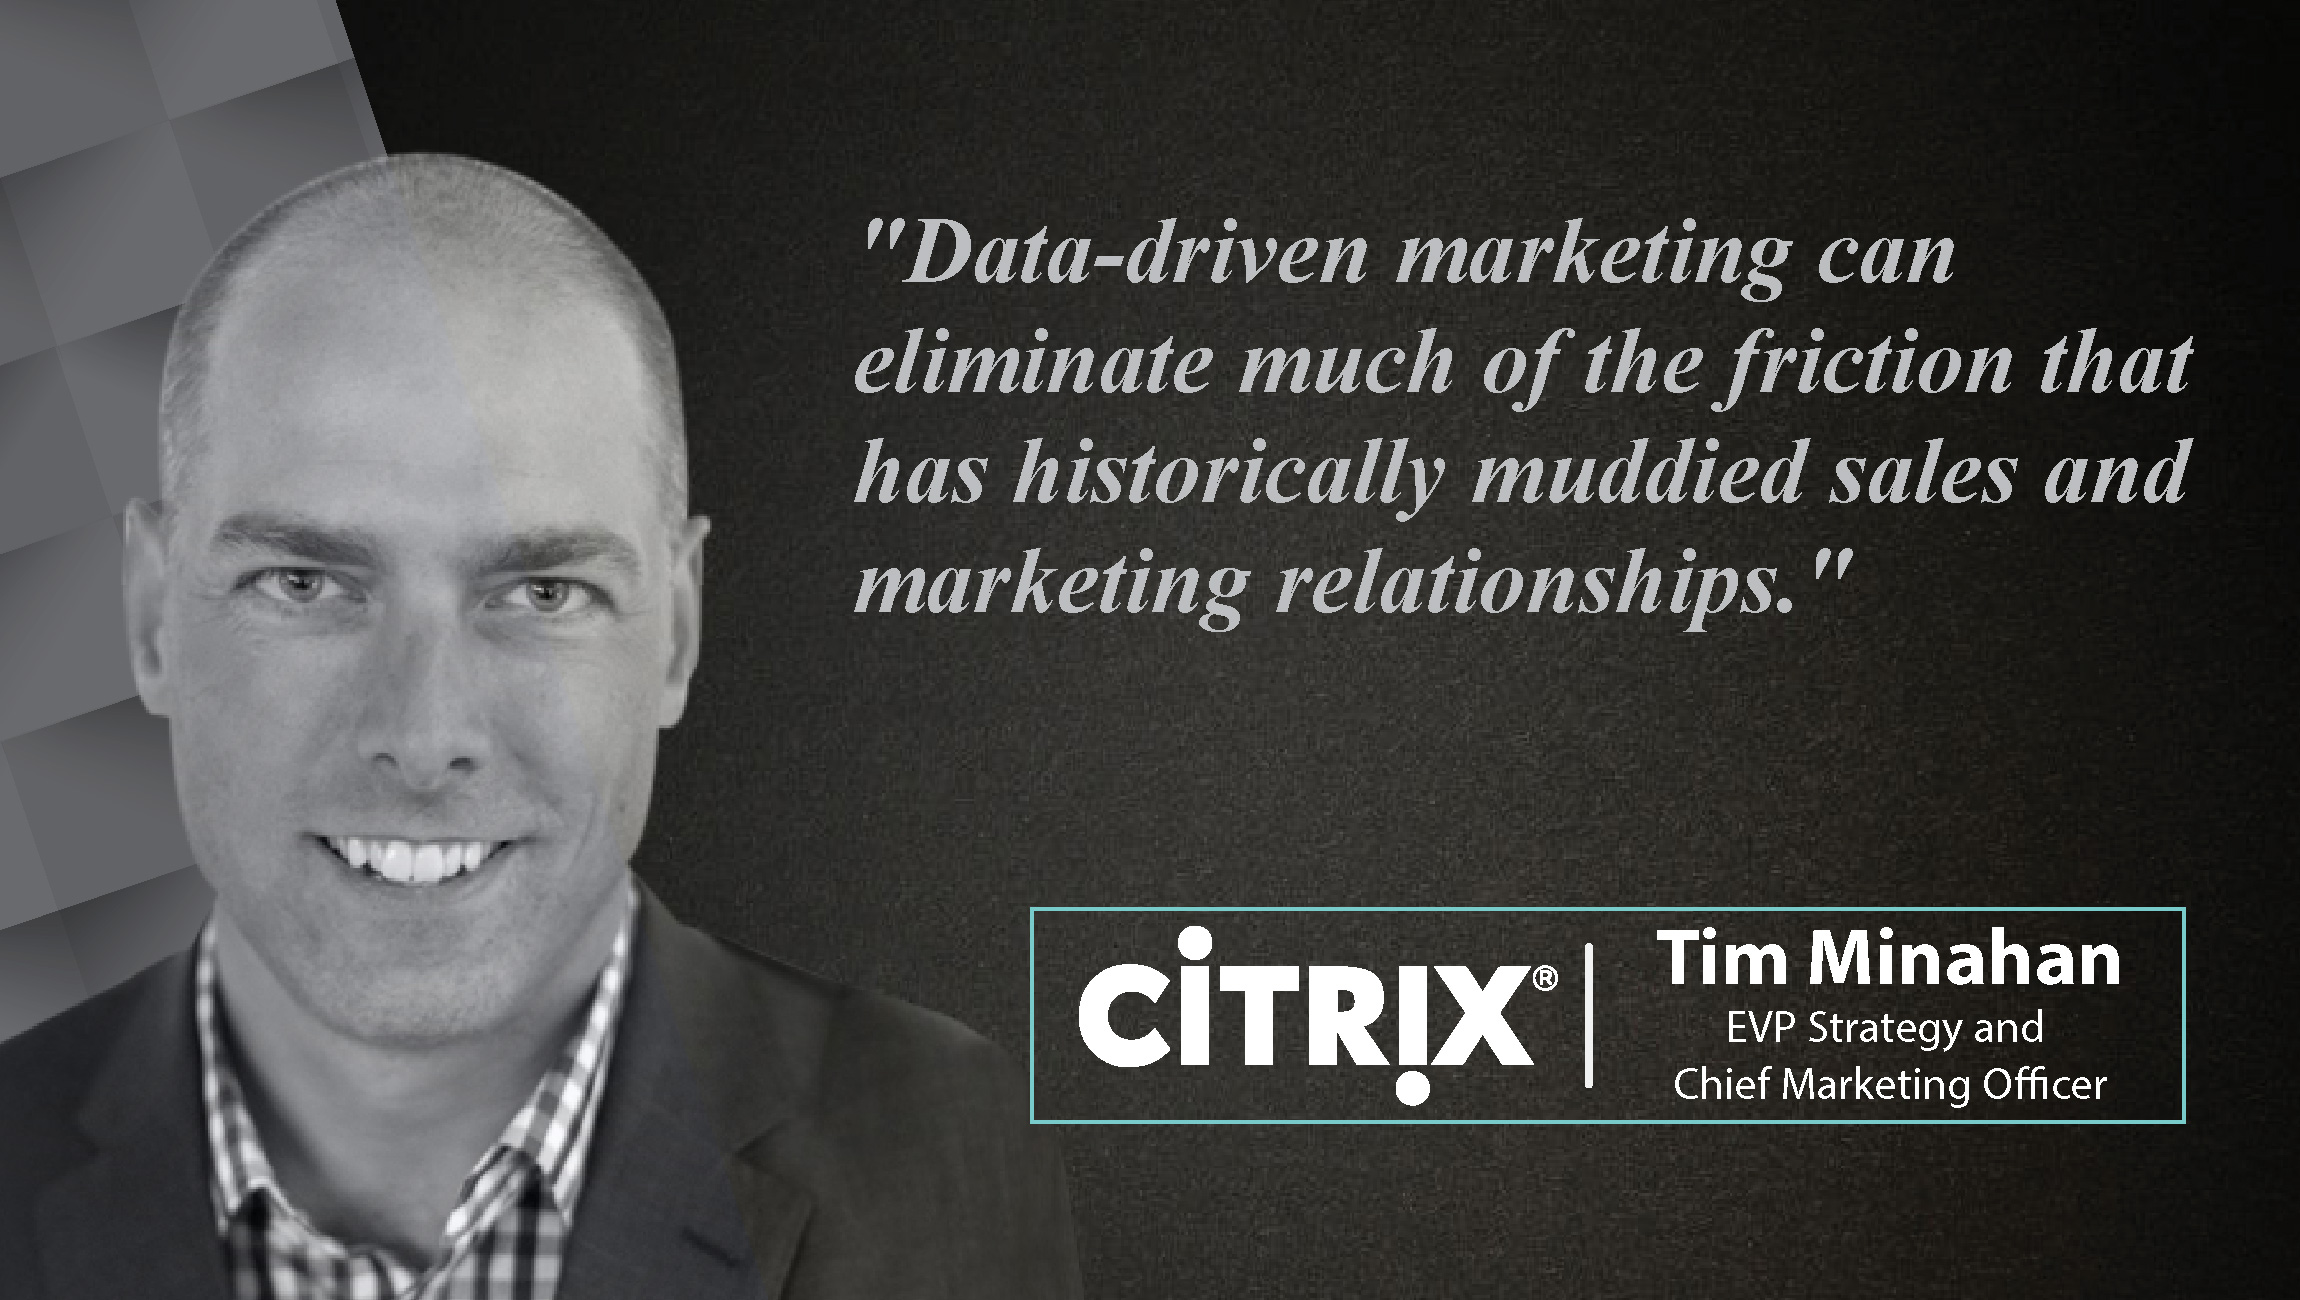 AiThority Interview with Tim Minahan, EVP and Chief Marketing Officer at Citrix